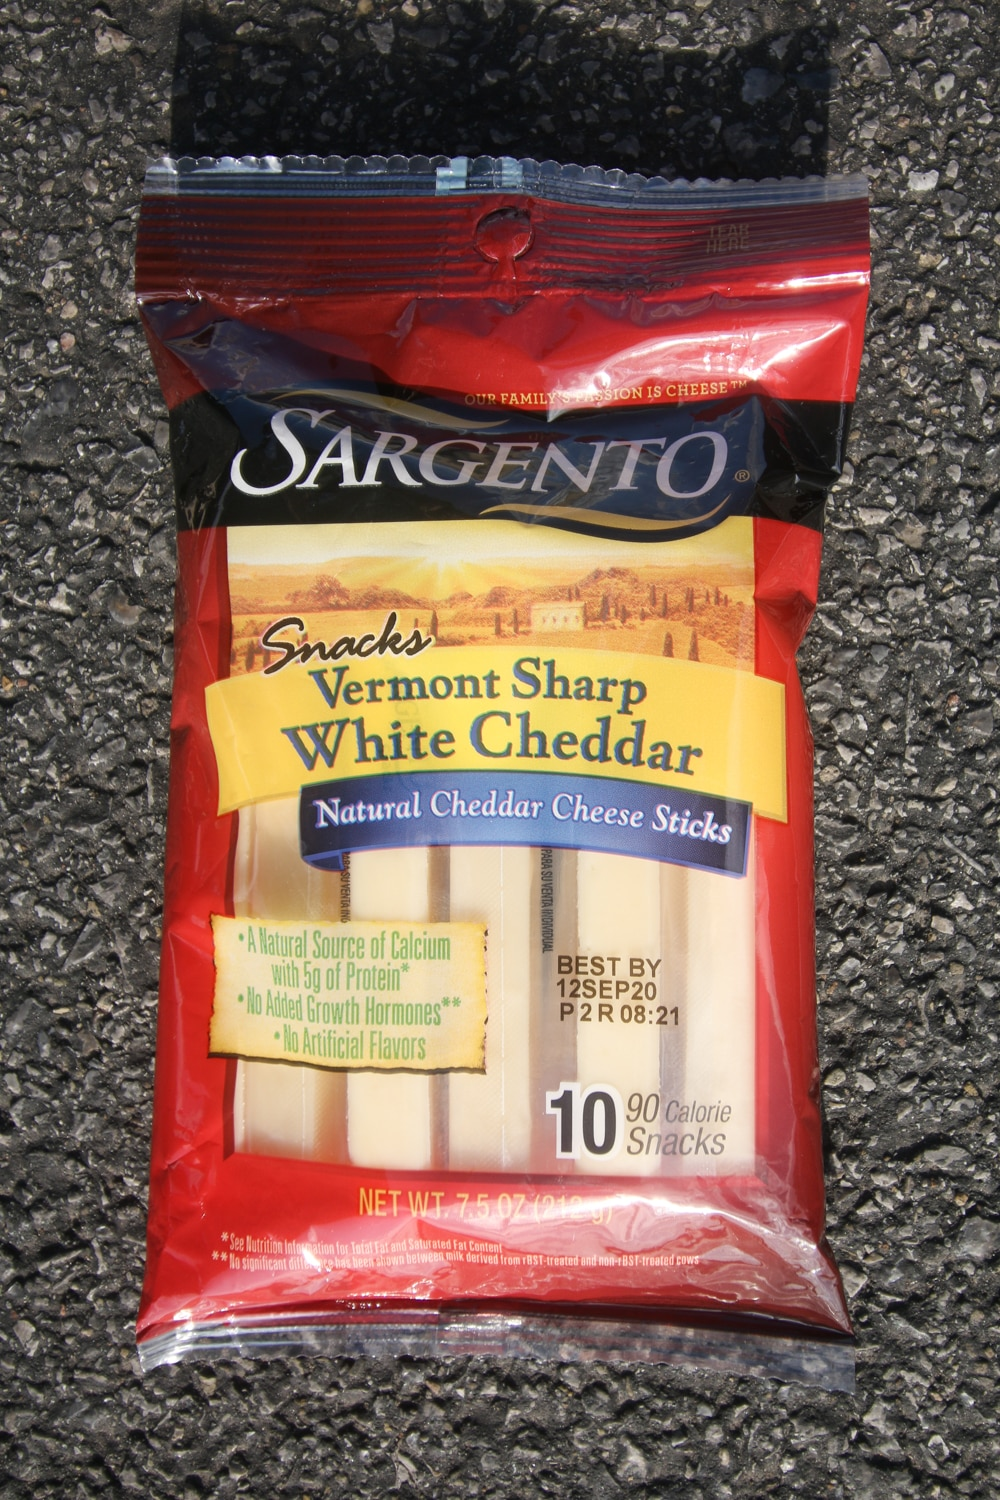 A package of white cheddar cheese sticks.